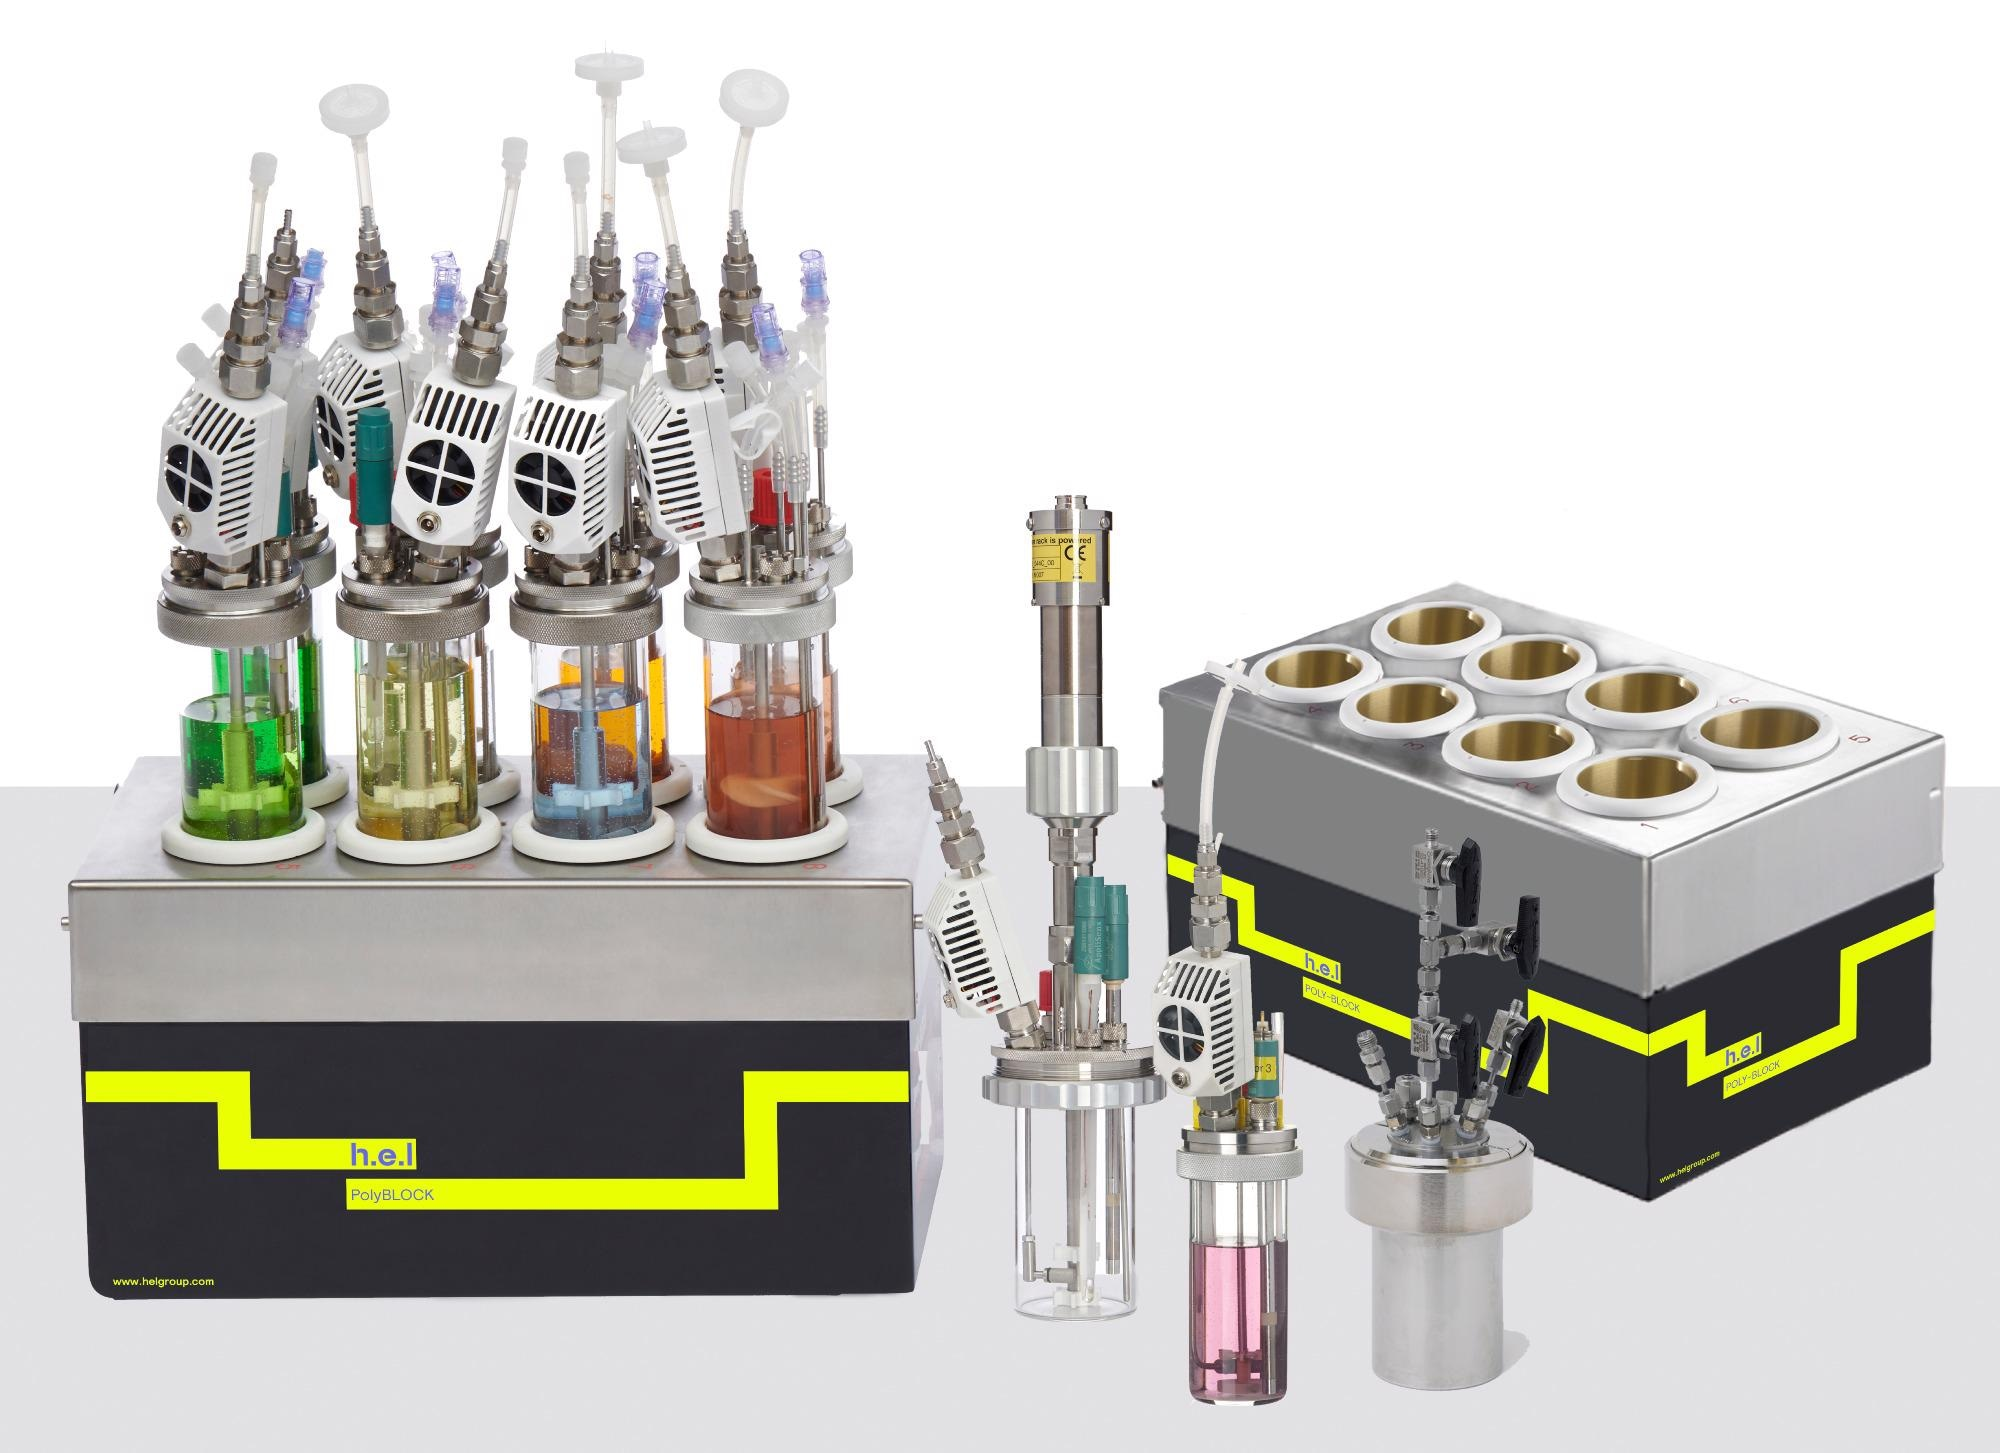 PolyBLOCK 8: A Compact 8 Reactor, Bench-Top, Automated Parallel Synthesis Platform